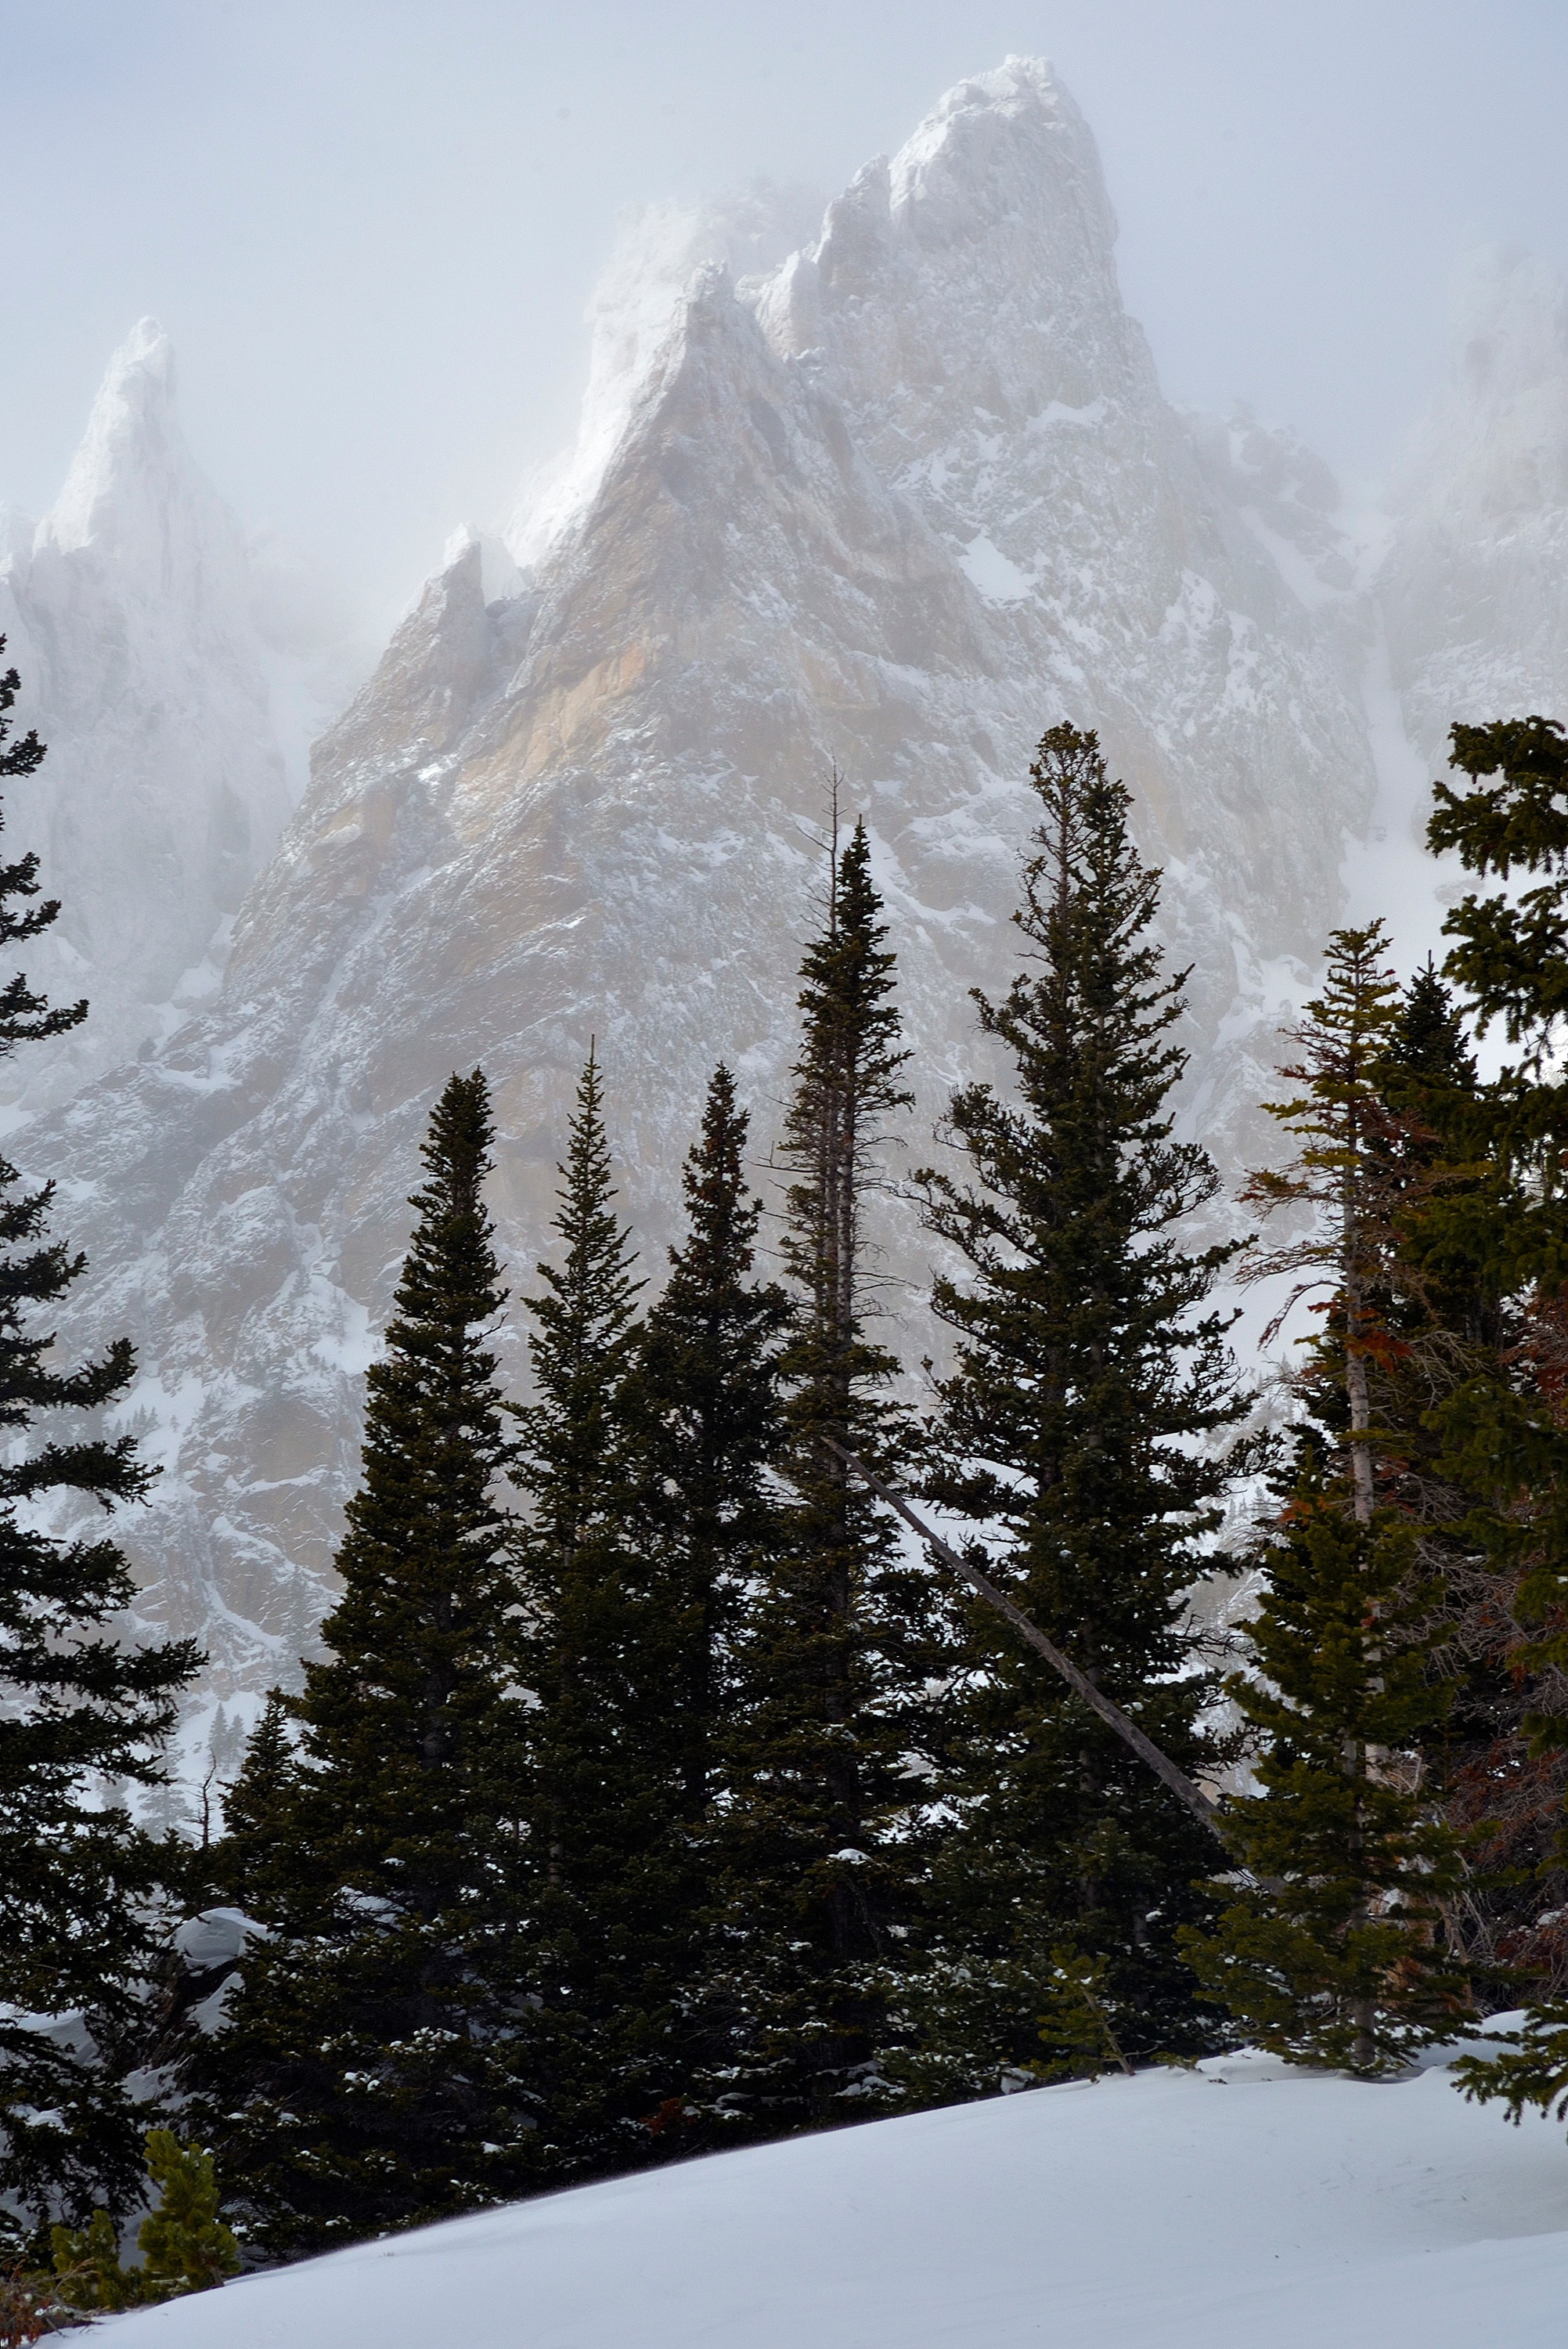 <div class='title'>           Mysterious Mountains         </div>                 <div class='description'>           A combination of low clouds and blowing snow gives a mysterious look to these jagged cliffs of rock on a blustery winter day in Rocky Mountain National Park. A touch of sunlight highlights the only partially visible spires, giving them an ethereal look.         </div>